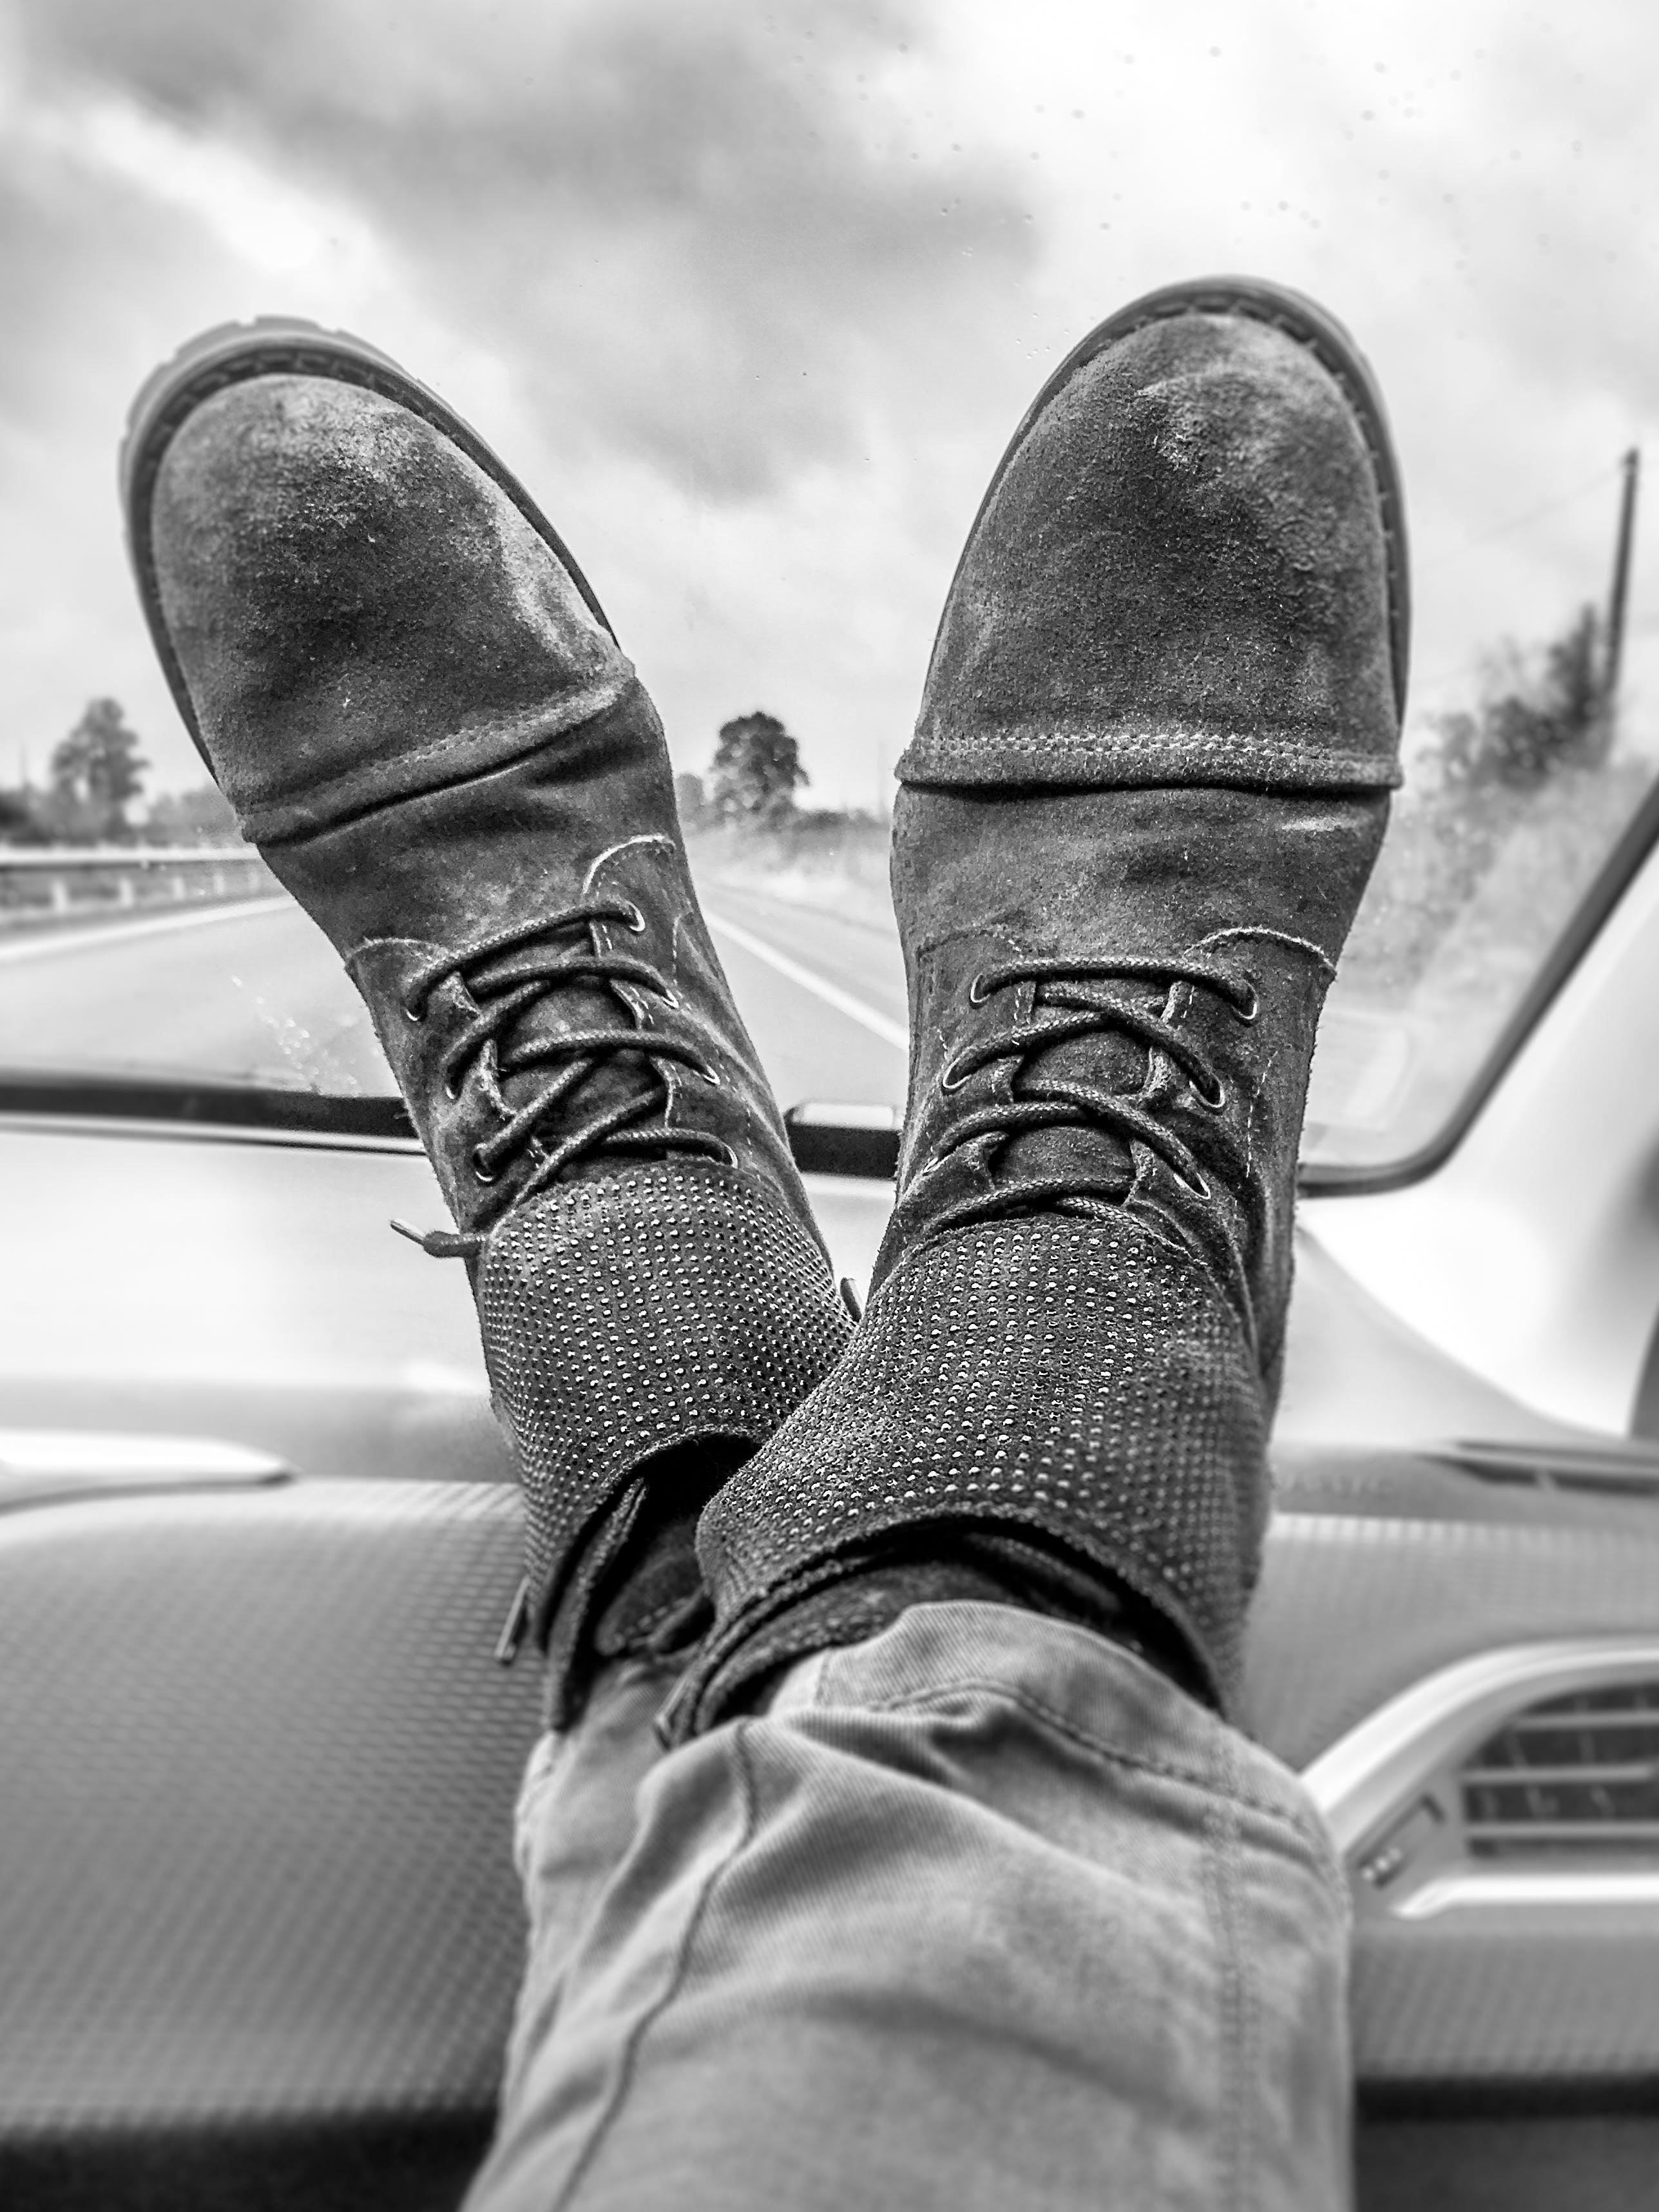 Grayscale Photography of Person's Feet on Vehicle Dashboard